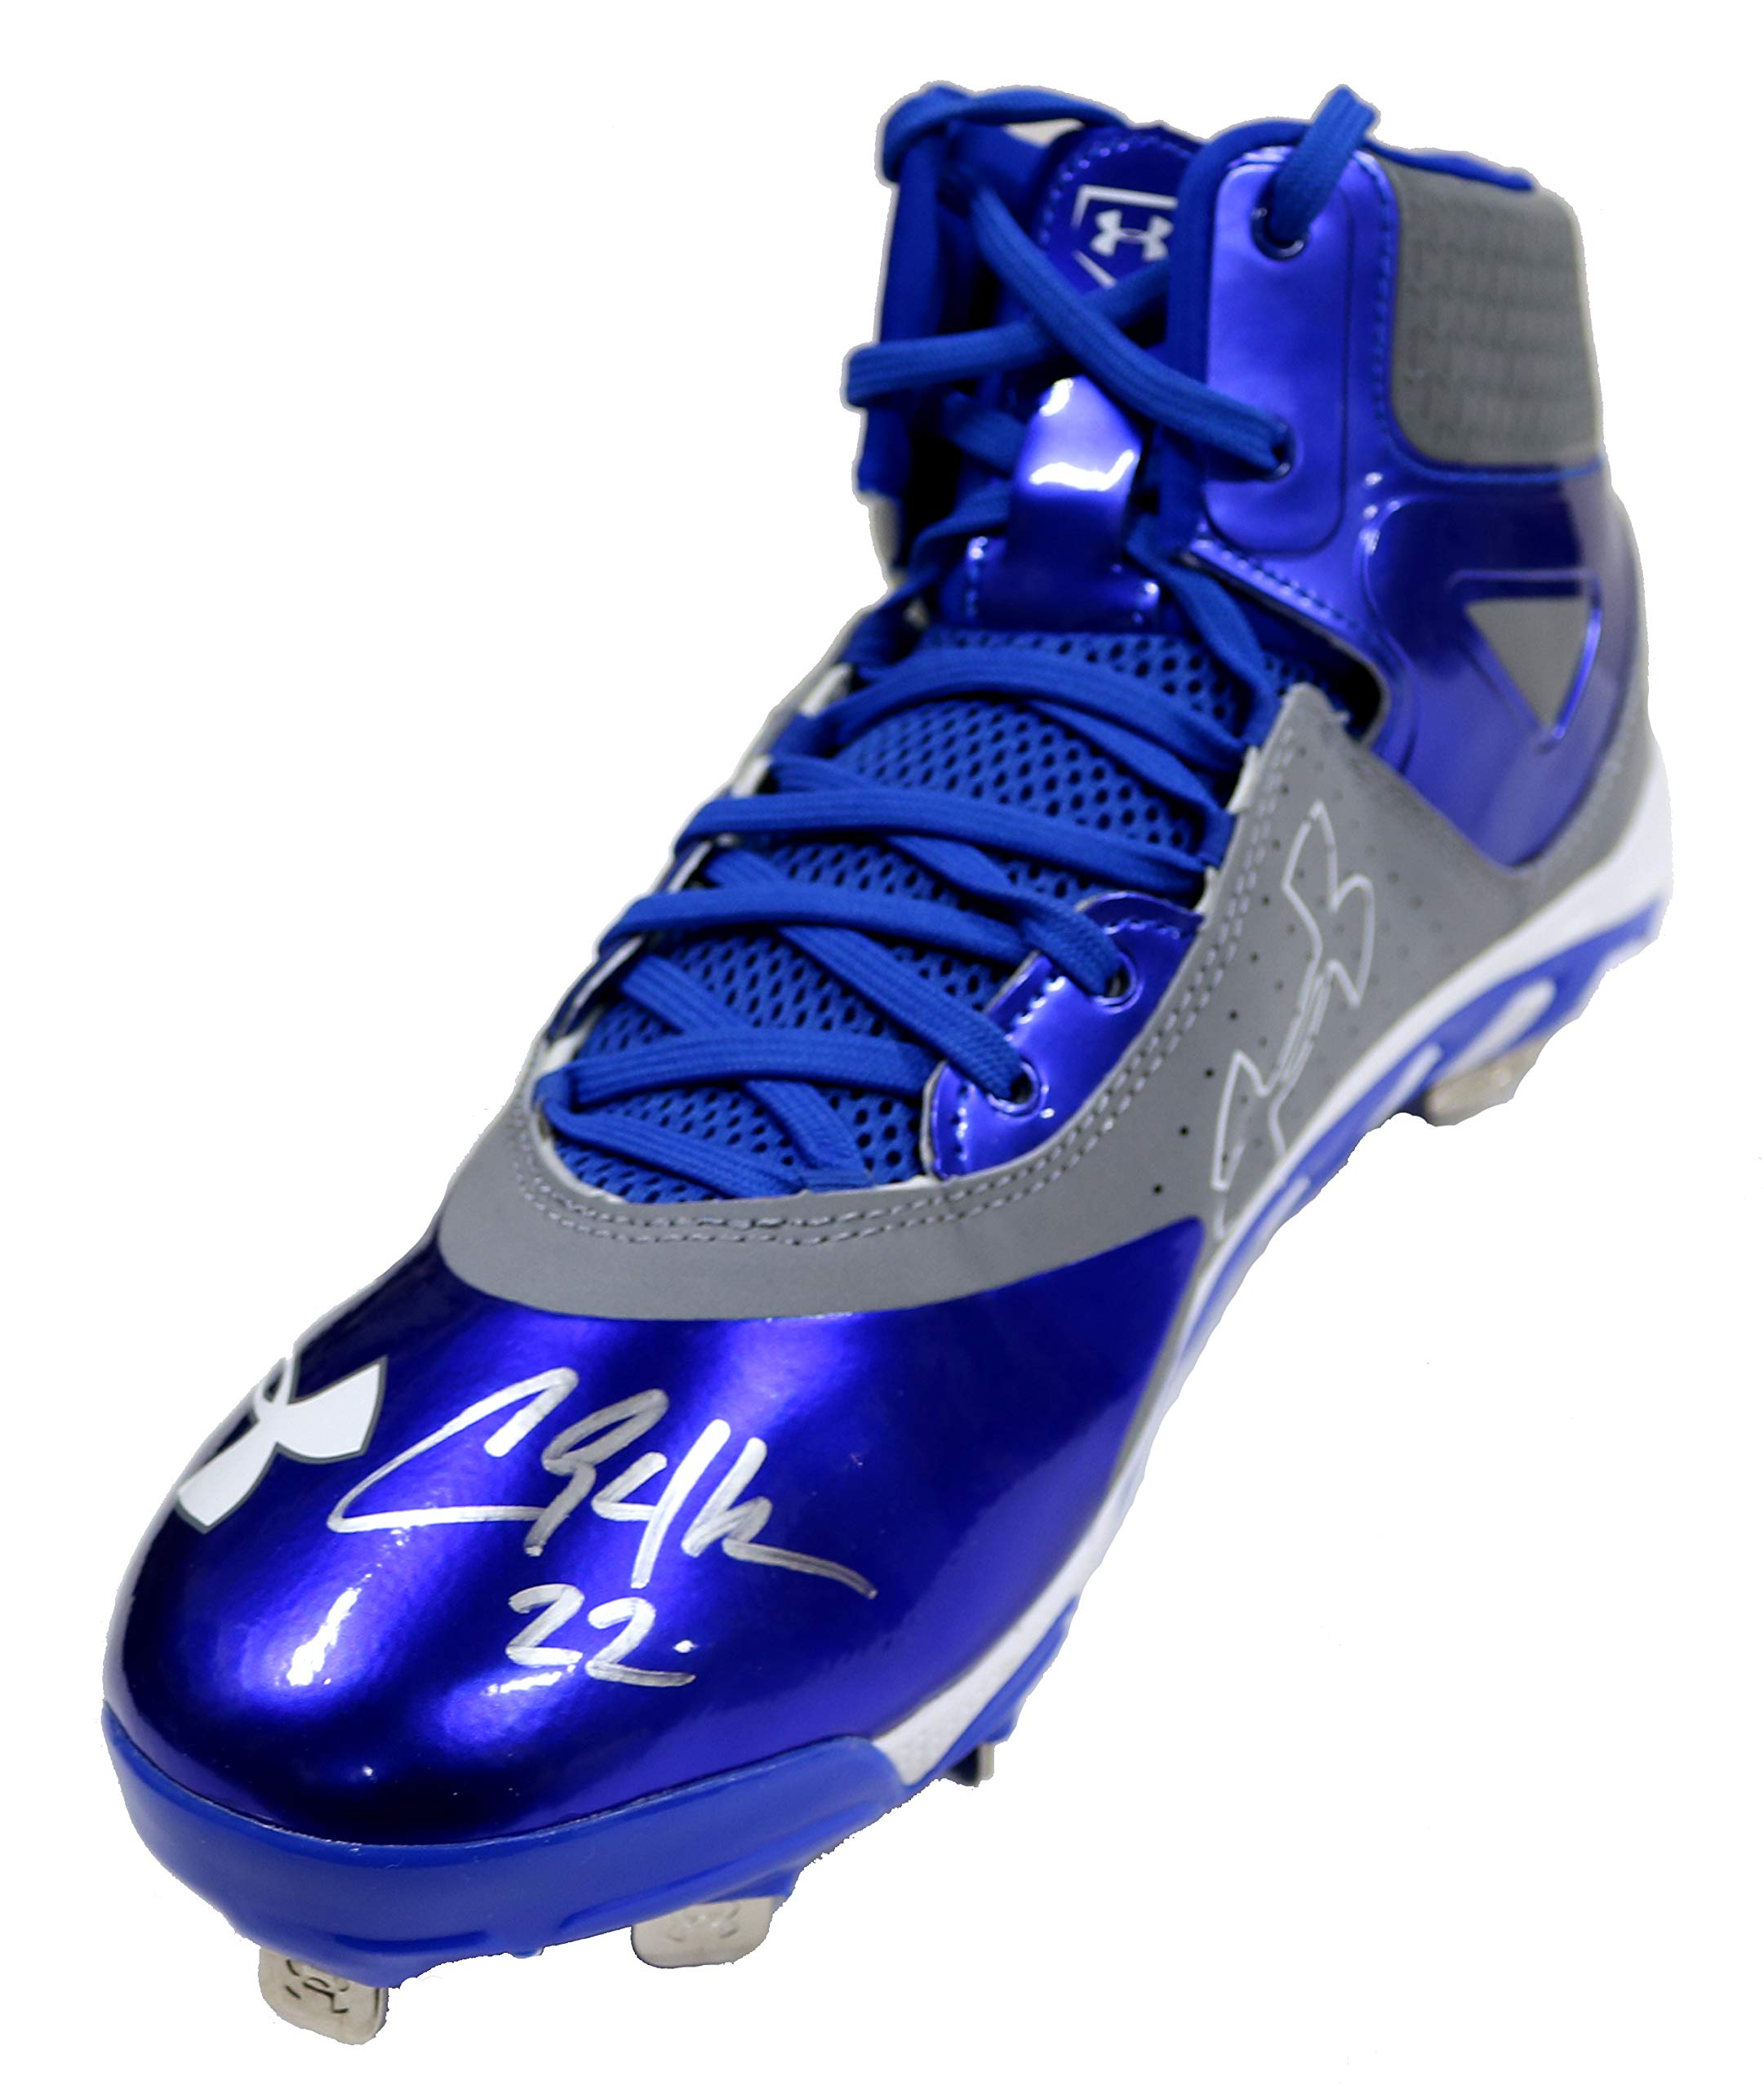 Clayton Kershaw Los Angeles Dodgers Signed Autographed Under Armour Baseball Cleat Shoe PAAS COA